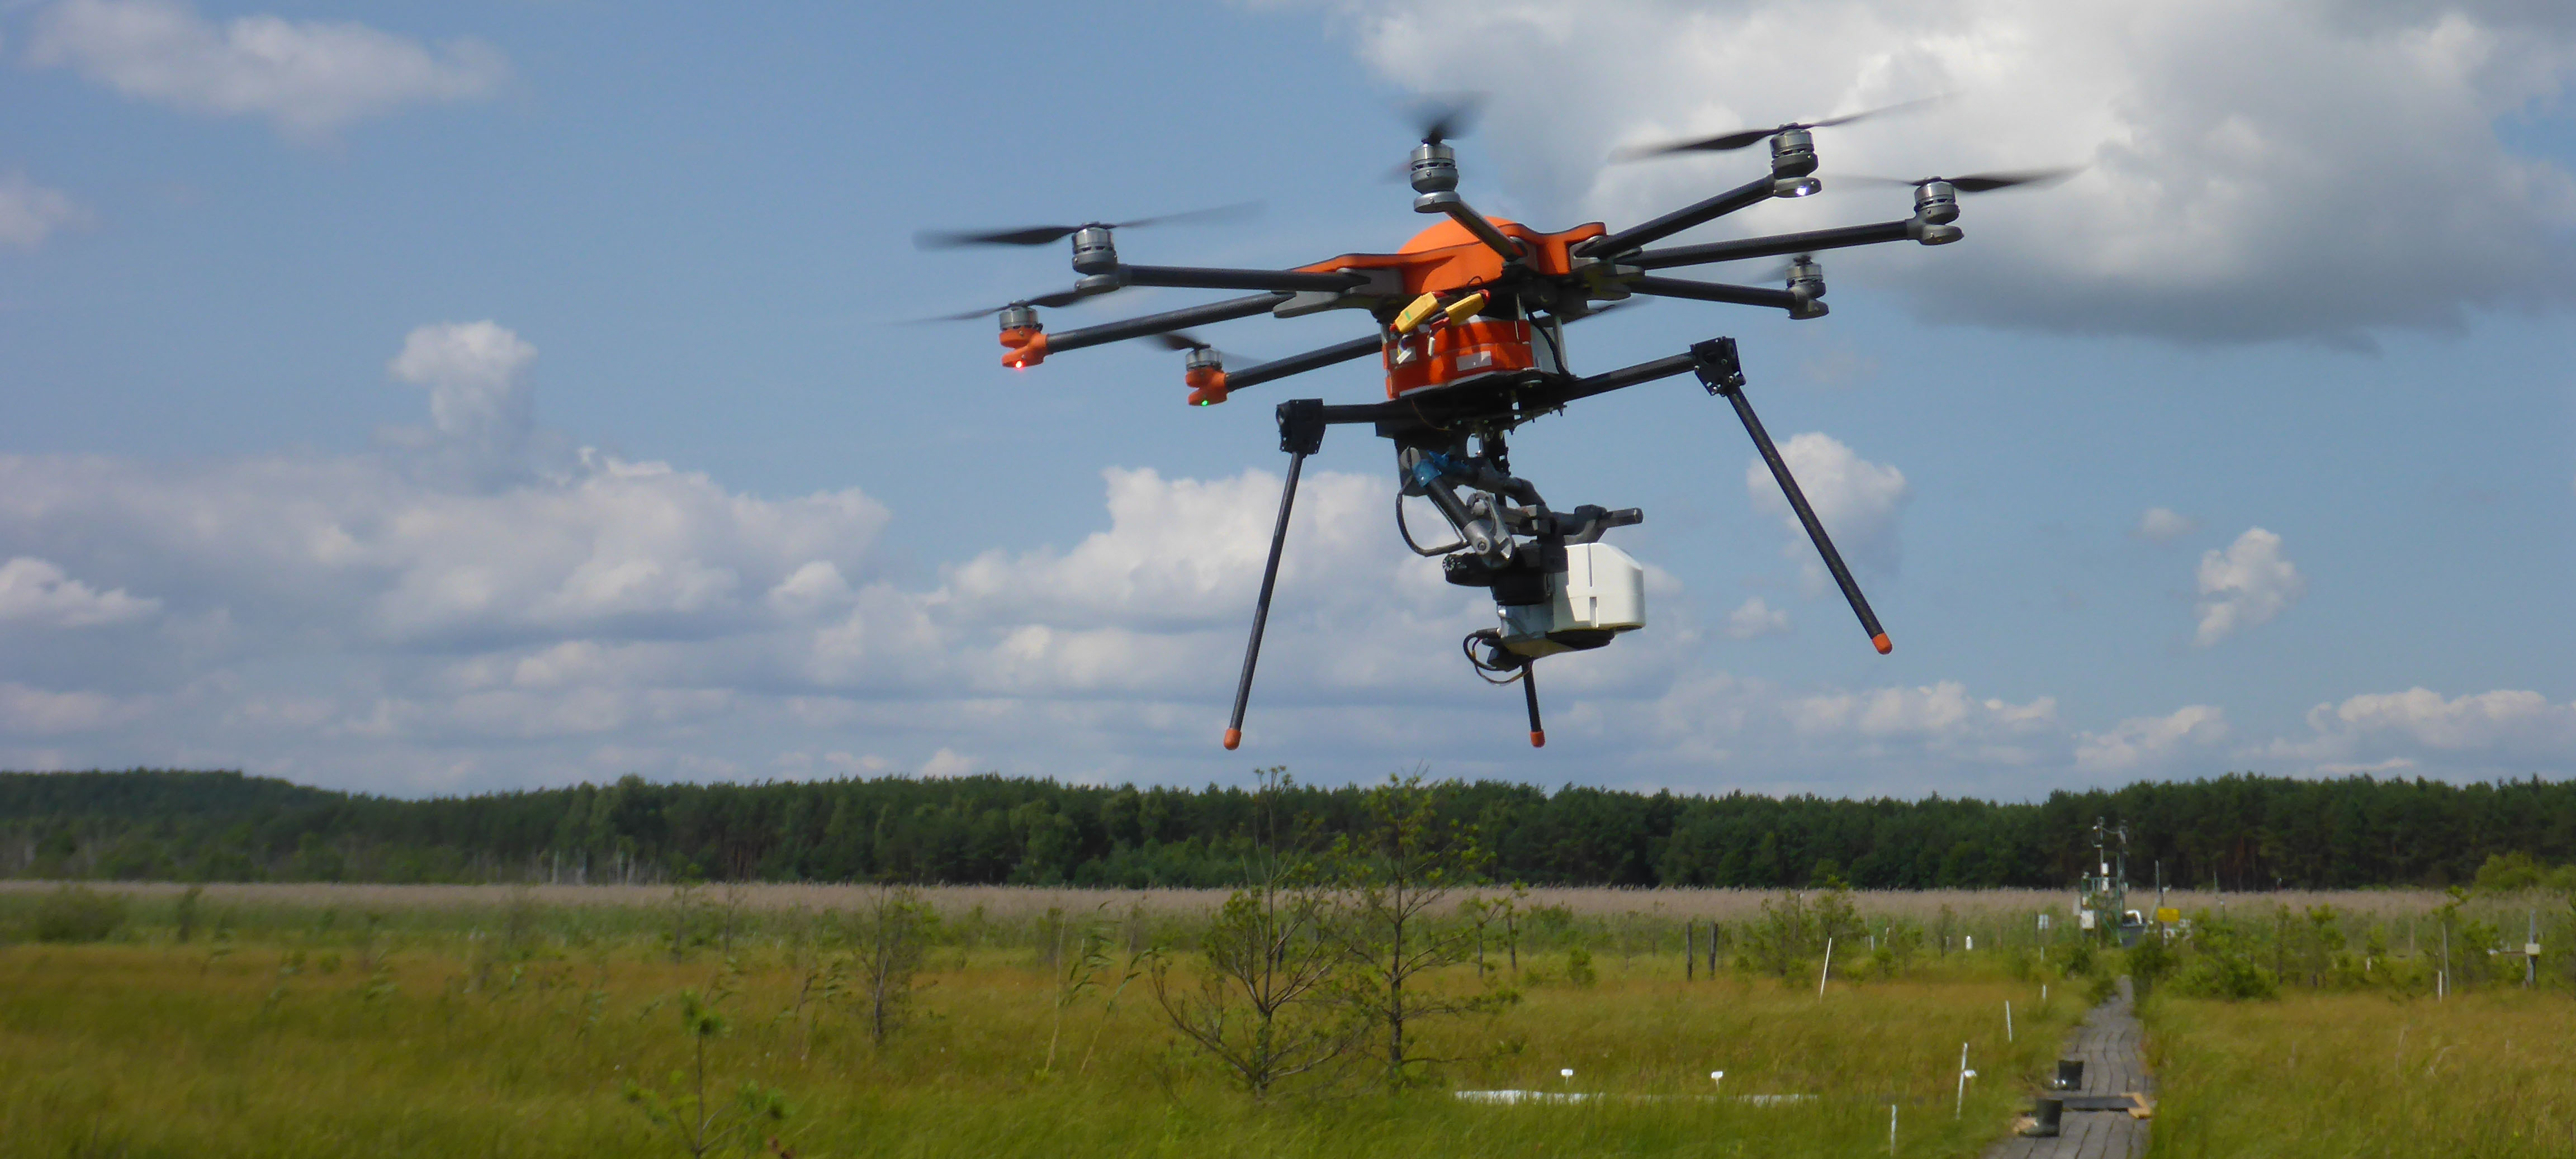 EUFAR and the Remotely-piloted Aircraft Community